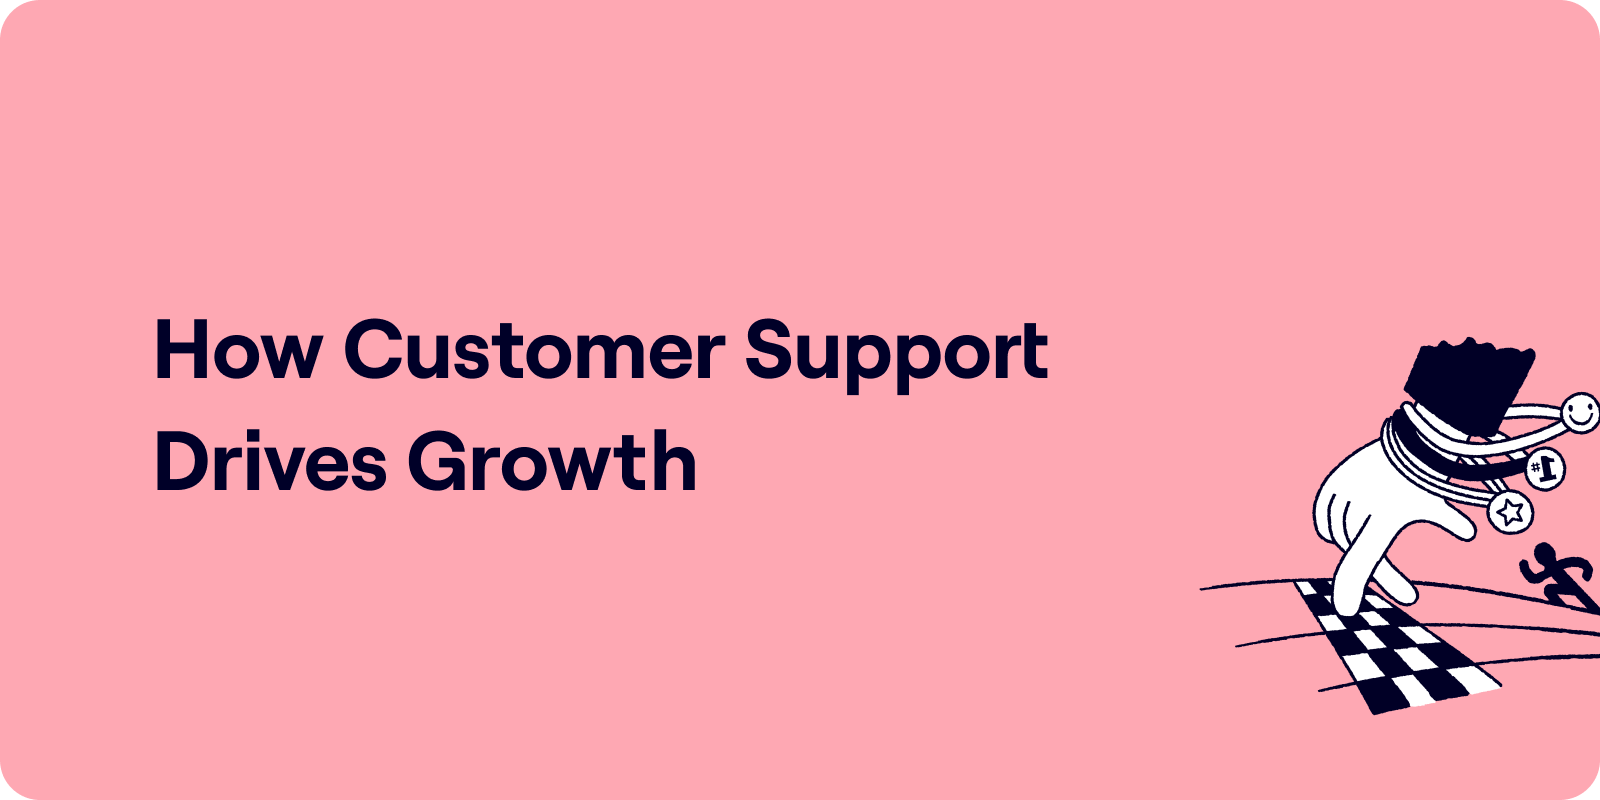 Why Customer Support is key to growth Illustration